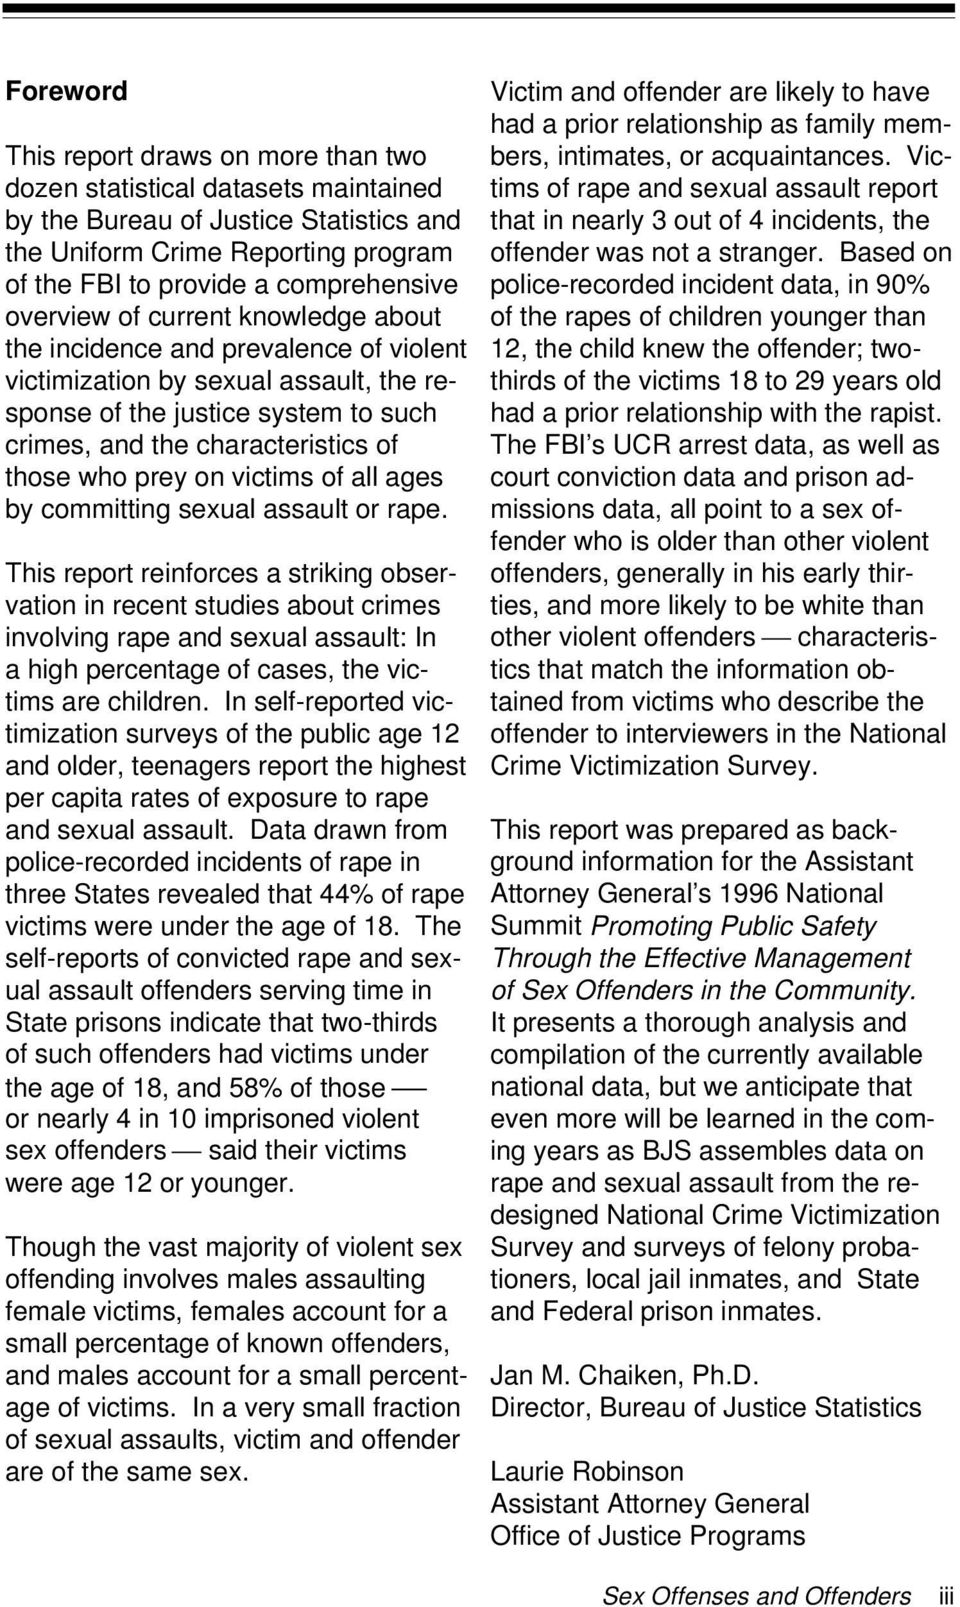 prey on victims of all ages by committing sexual assault or rape.